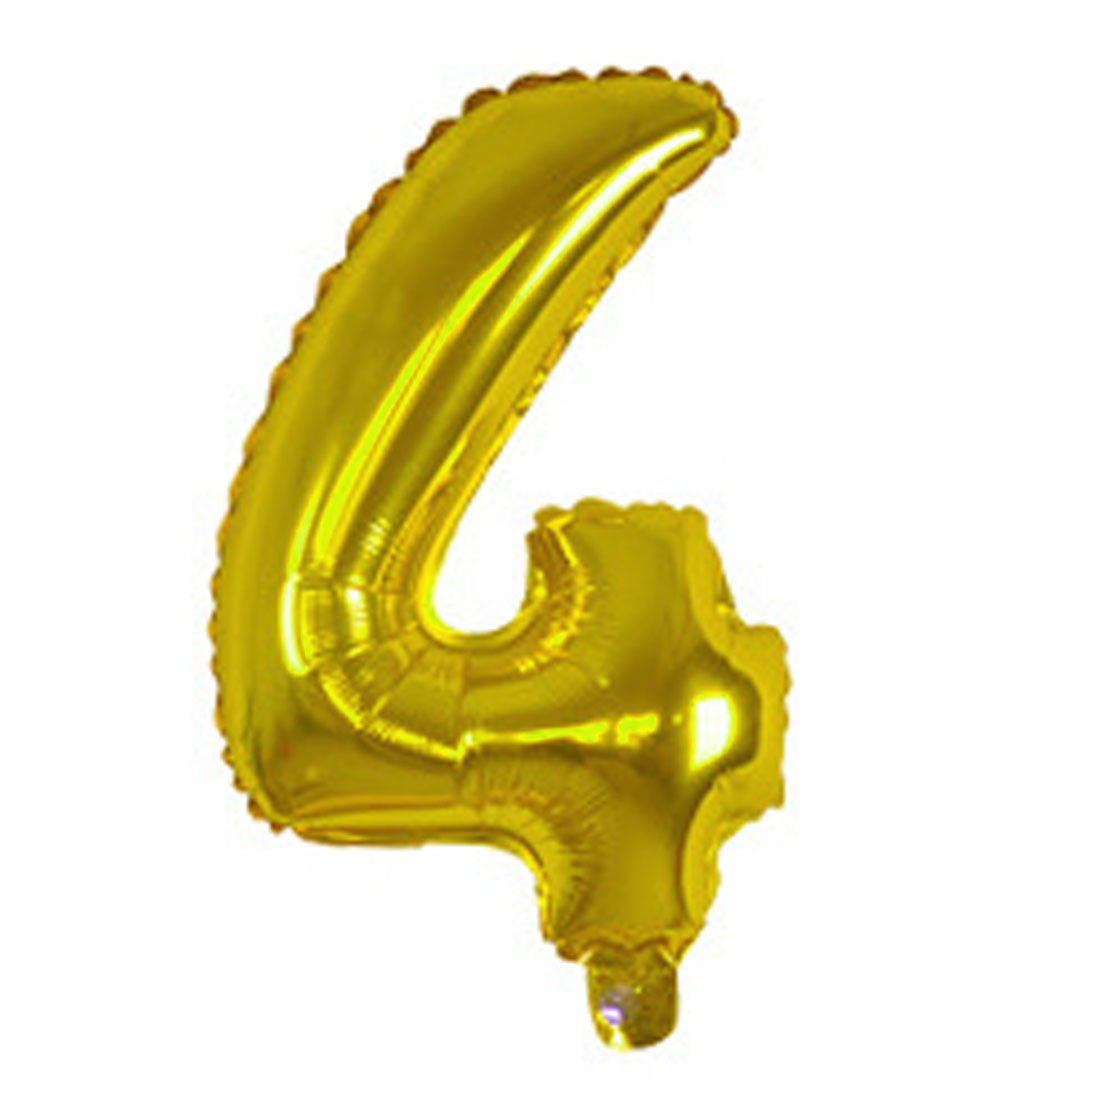 Unique Bargains Foil Number 4 Shape Helium Balloon Birthday Wedding Decor Gold Tone 16""